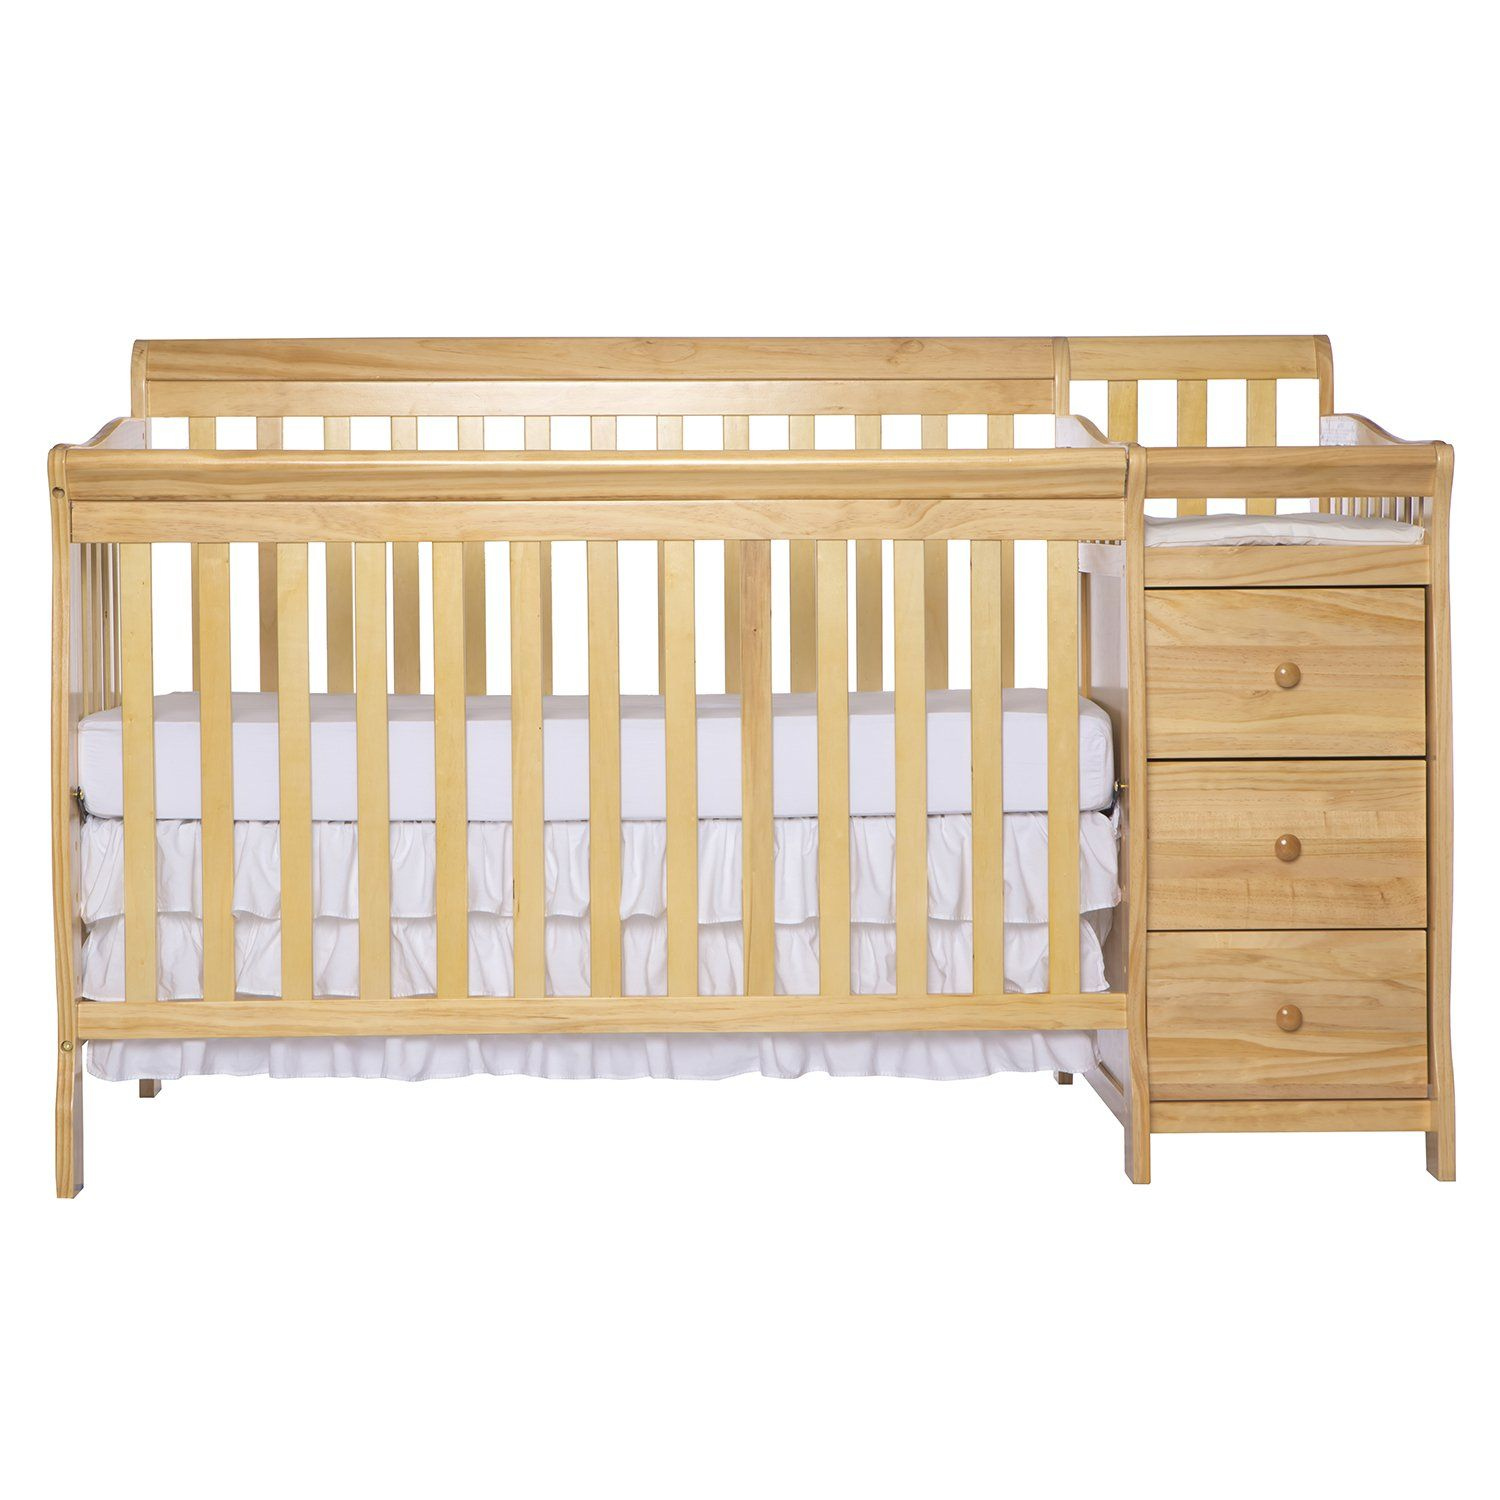 Dream On Me 5 In 1 Brody Convertible Crib With Changer Natural Cribs Convertible Crib Crib With Changing Table